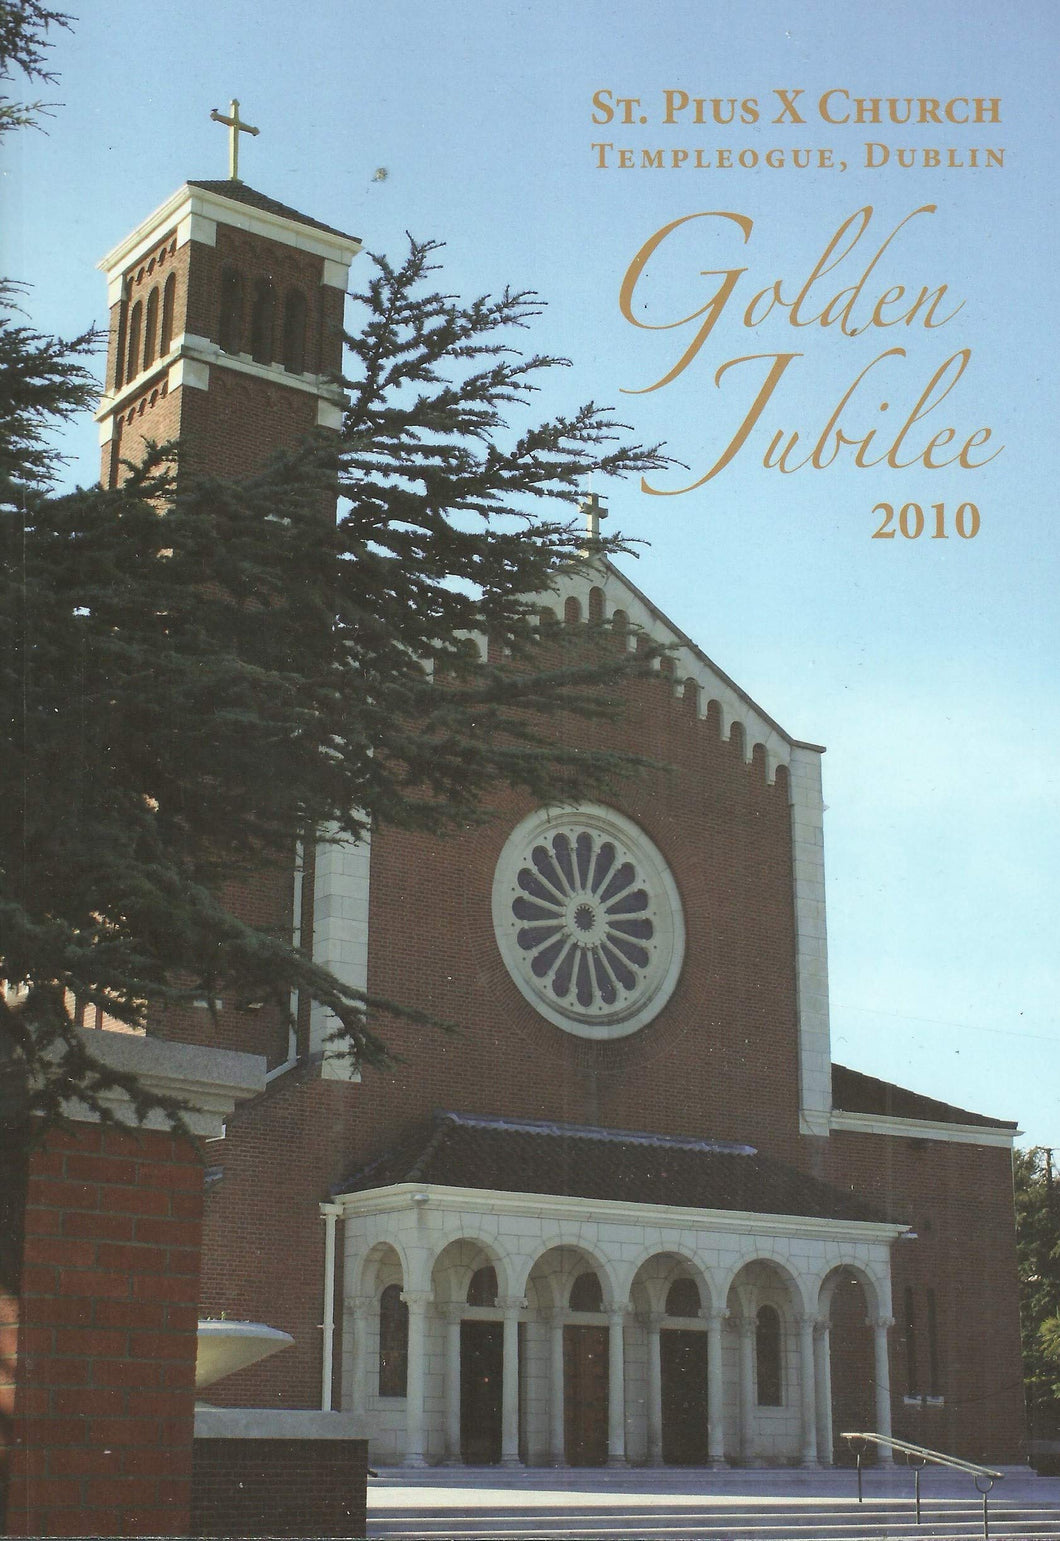 St Pius X Church, Templeogue, Dublin - Golden Jubilee 2010